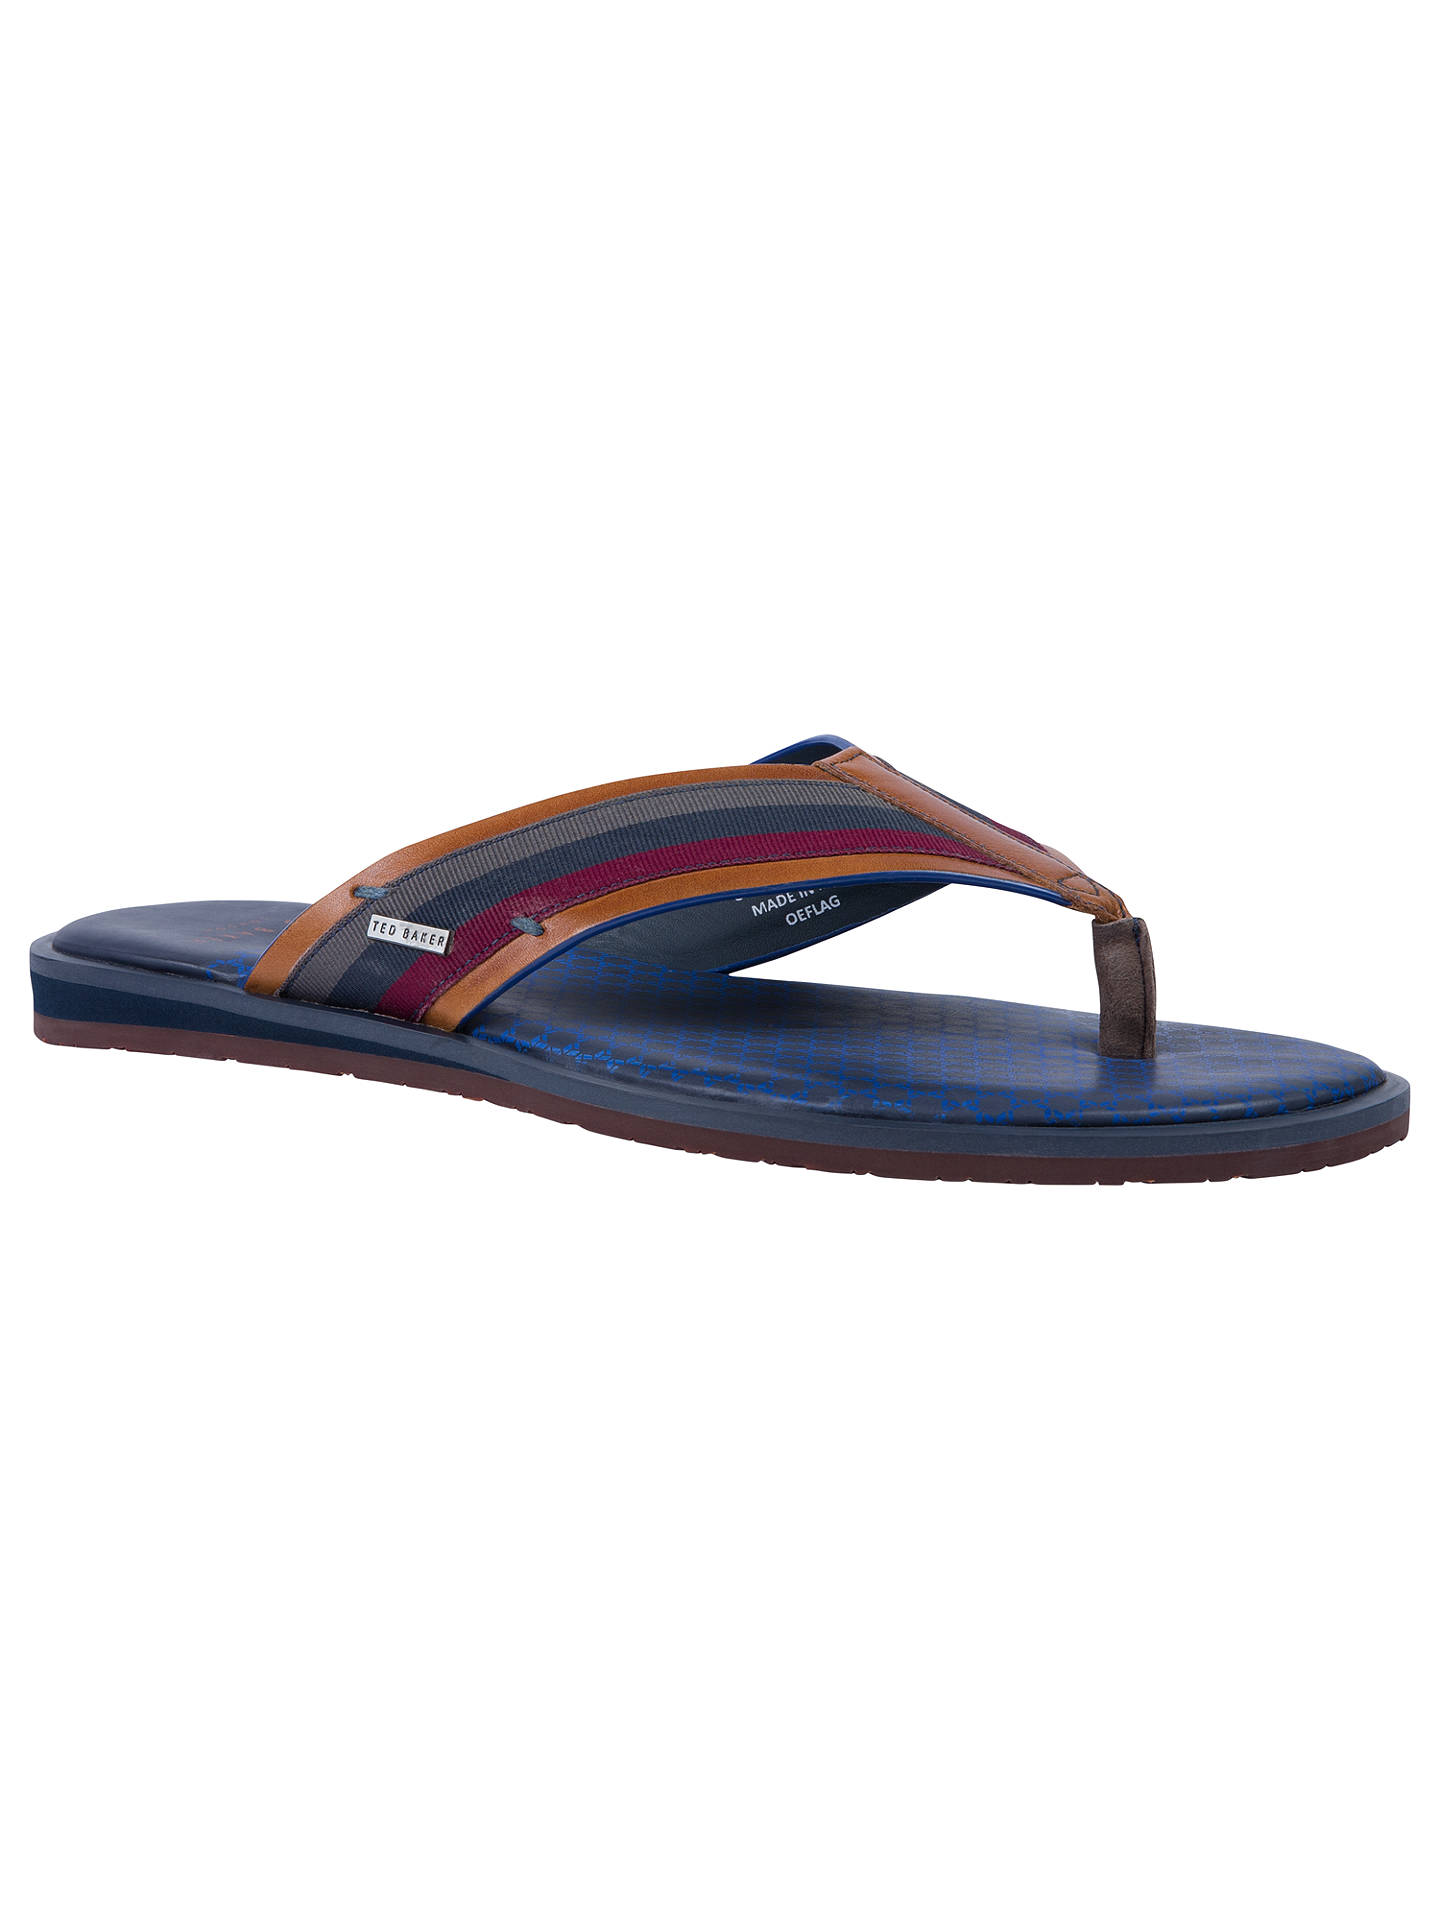 531436f99426 Ted Baker Knowlun Toe Post Sandals at John Lewis   Partners